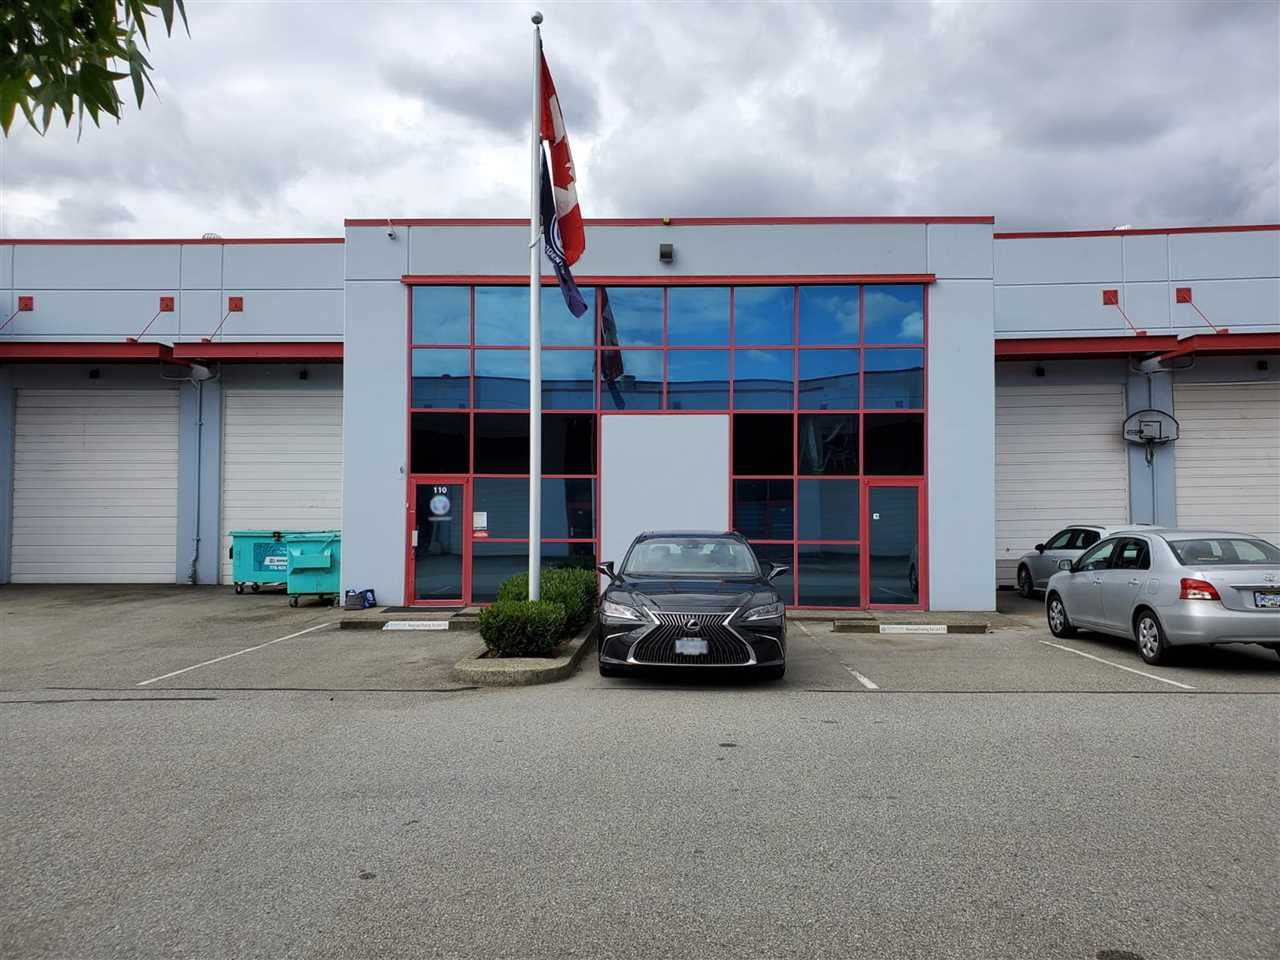 Main Photo: 110 42 FAWCETT ROAD in Coquitlam: Cape Horn Industrial for sale